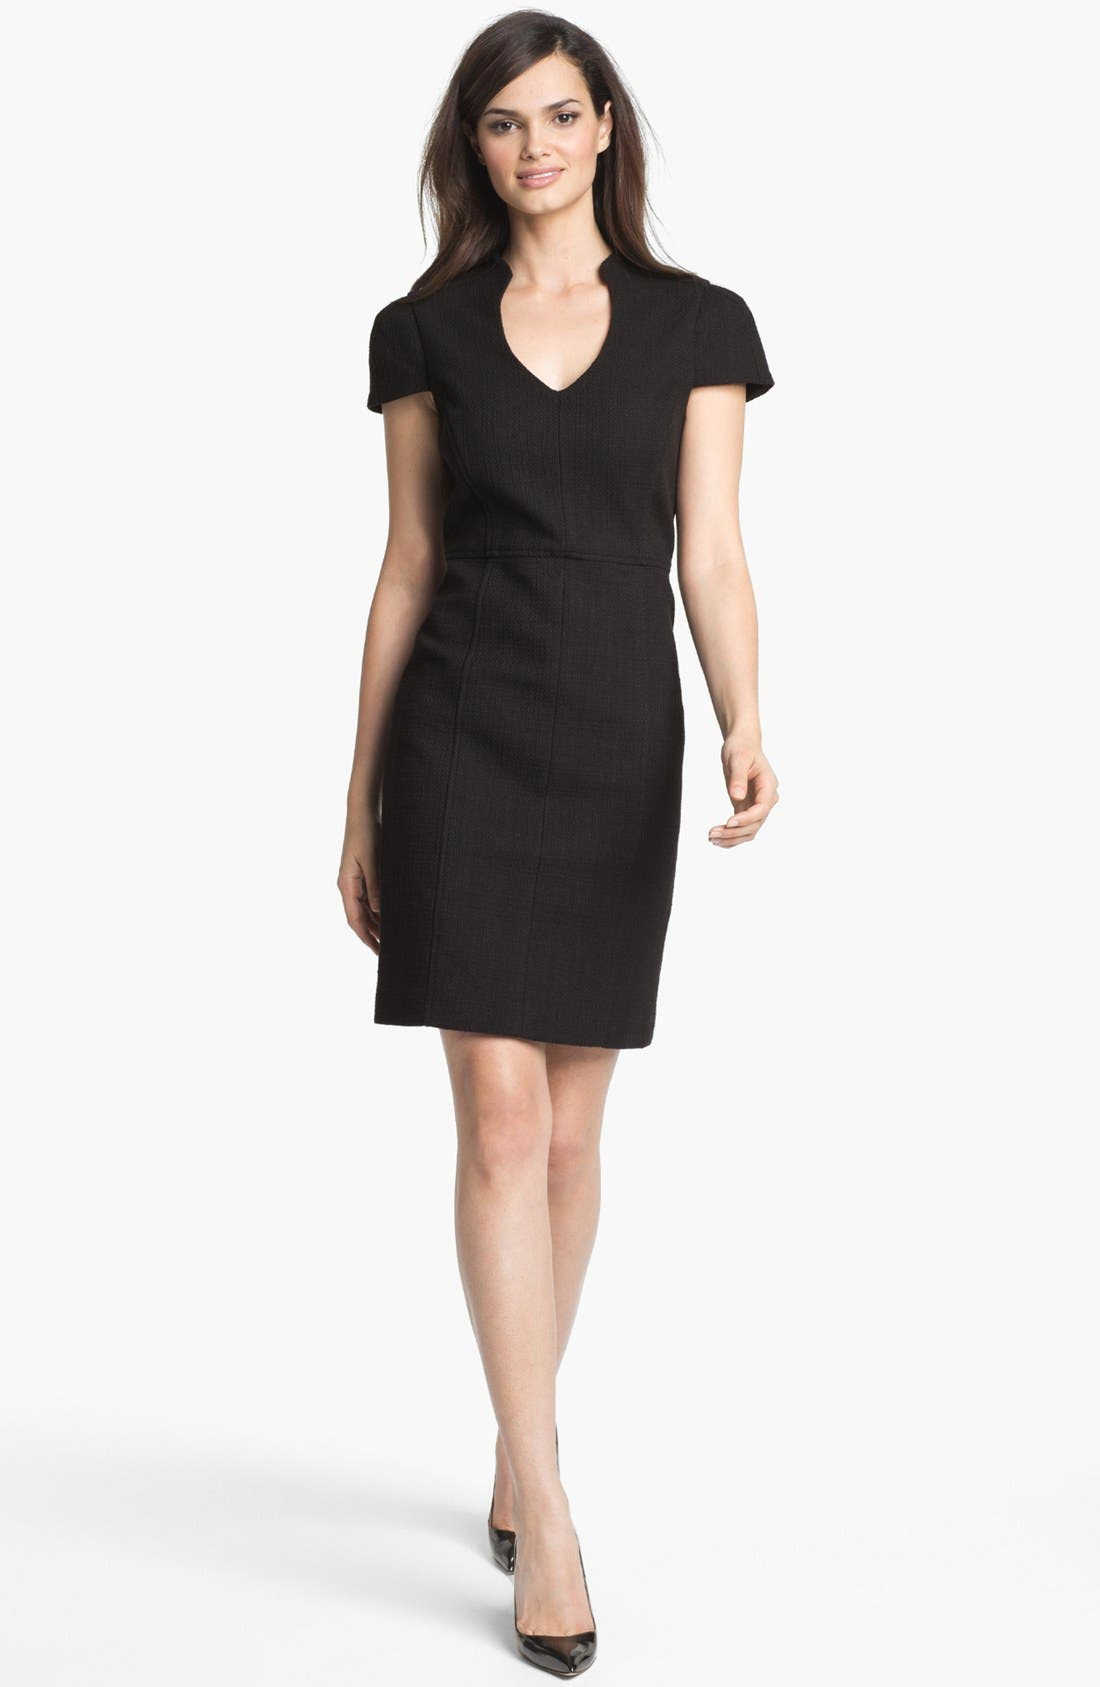 Main Image - 4.collective Basket Weave Sheath Dress